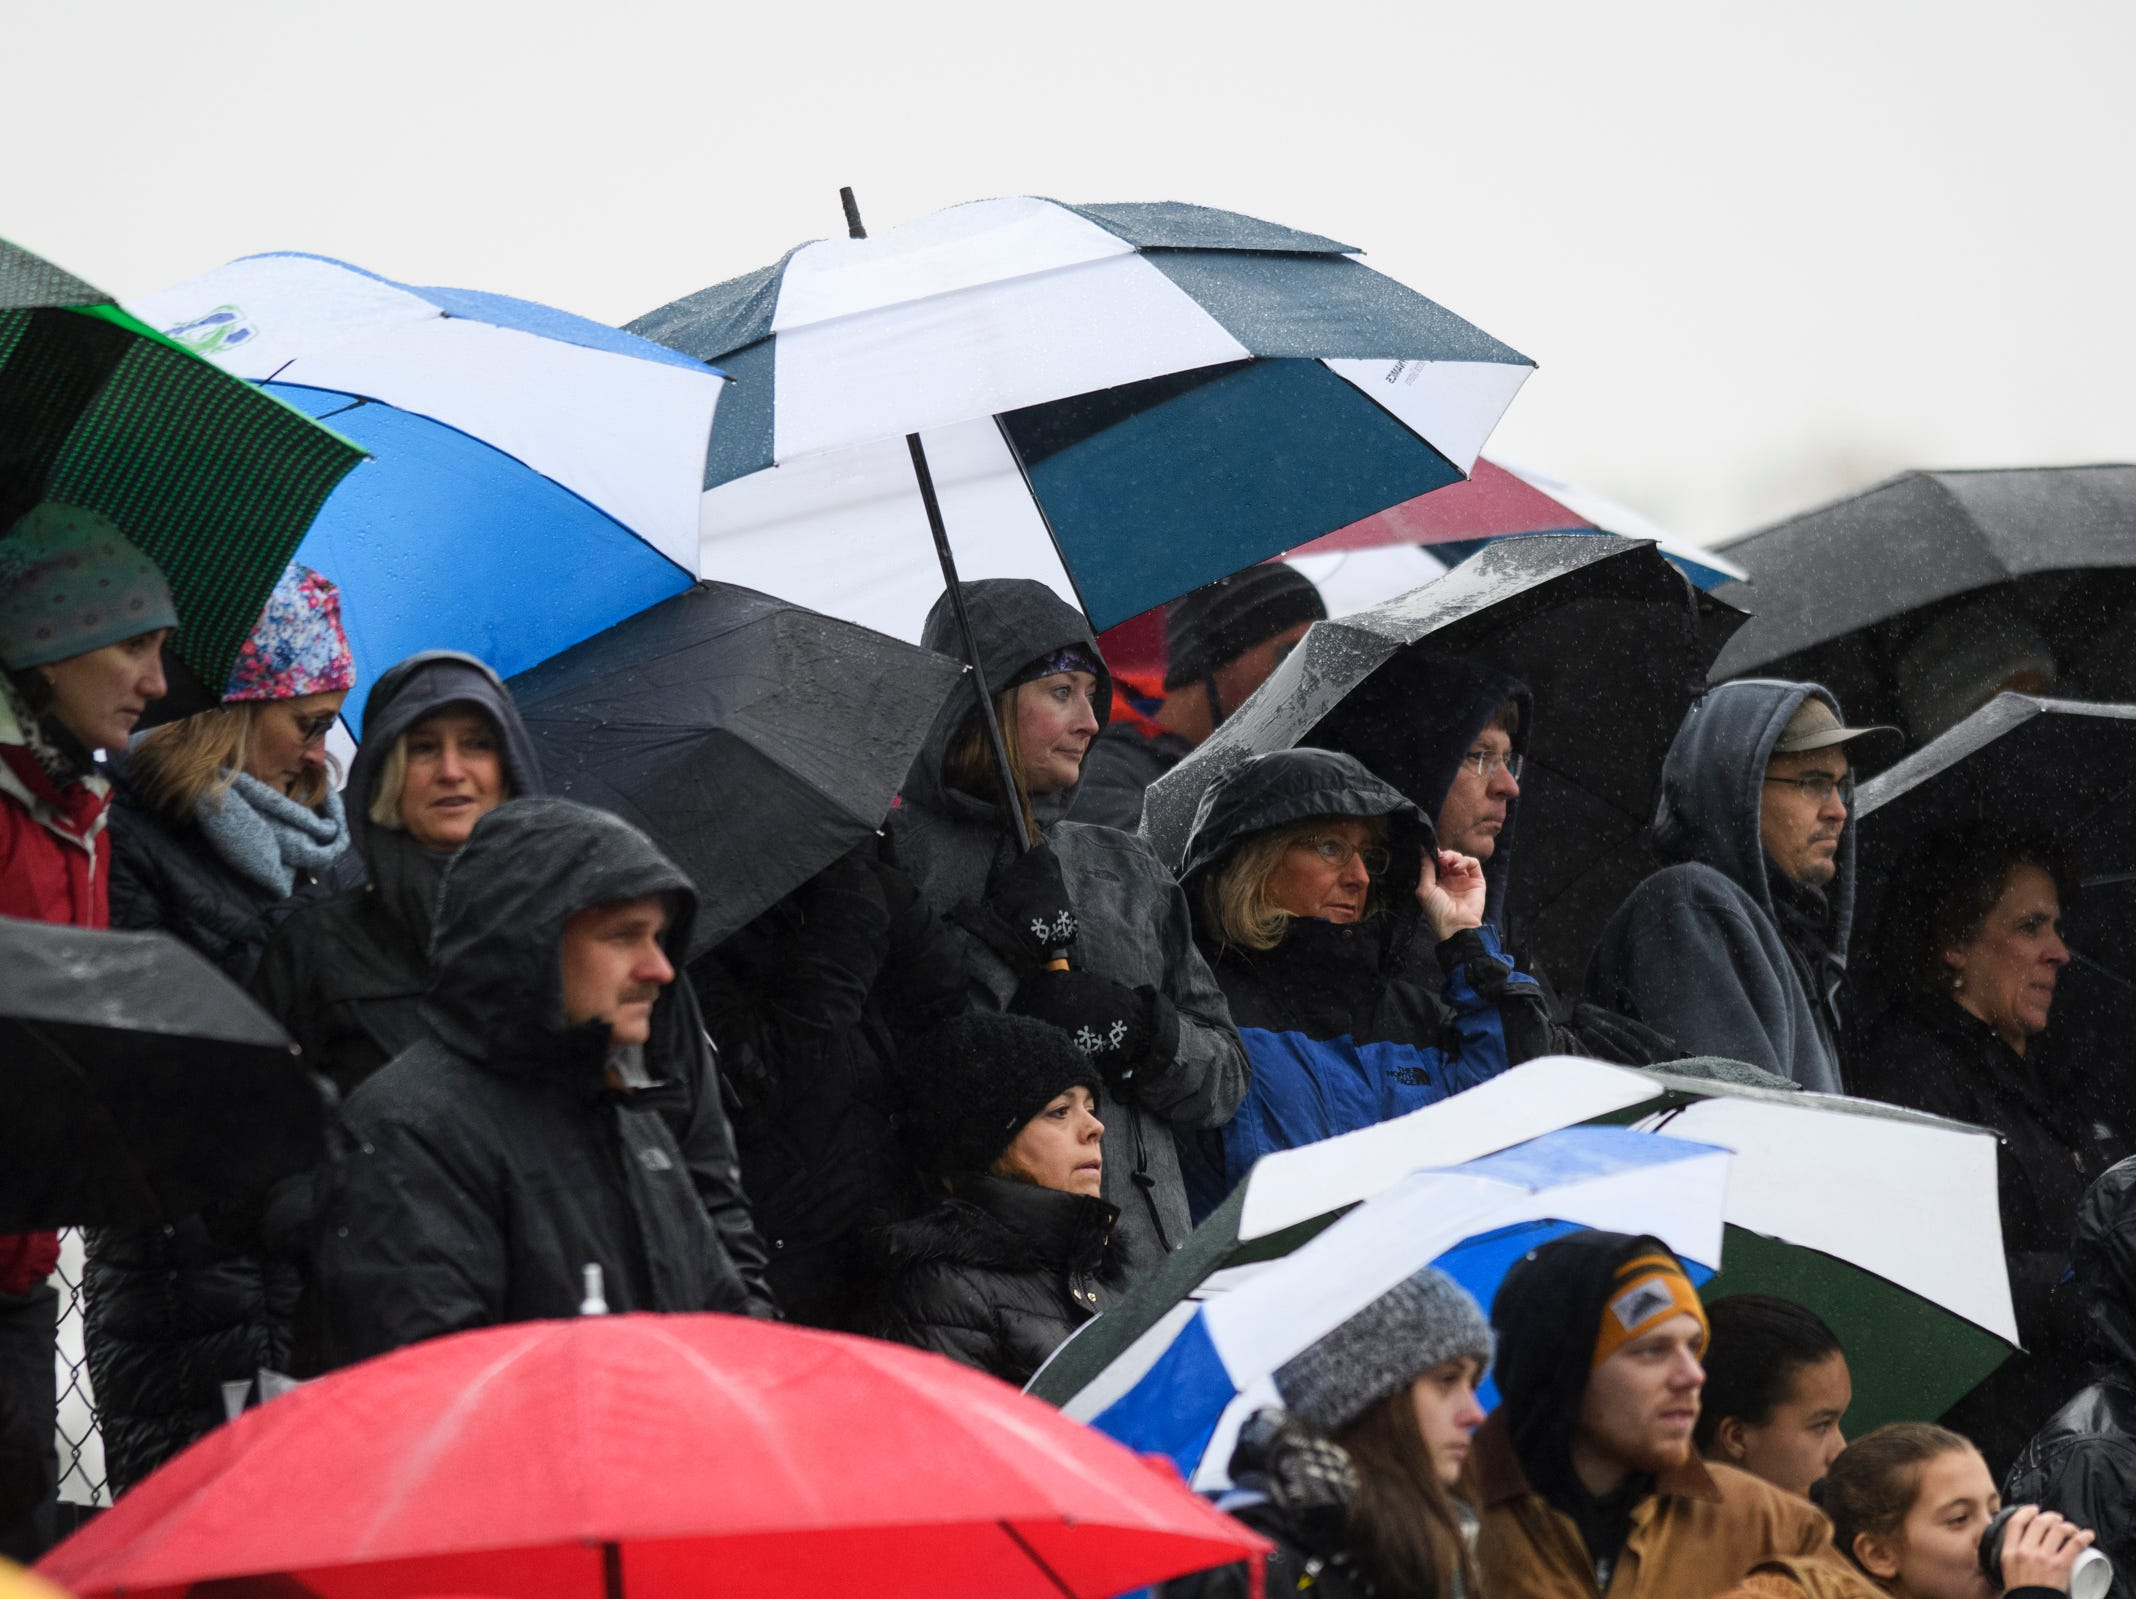 Parents and fans watch the action in the pouring rain during the division I girls soccer championship game between the Colchester Lakers and the Champlain Valley Union Redhawks at Buck Hard Field on Saturday morning November 3, 2018 in Burlington.